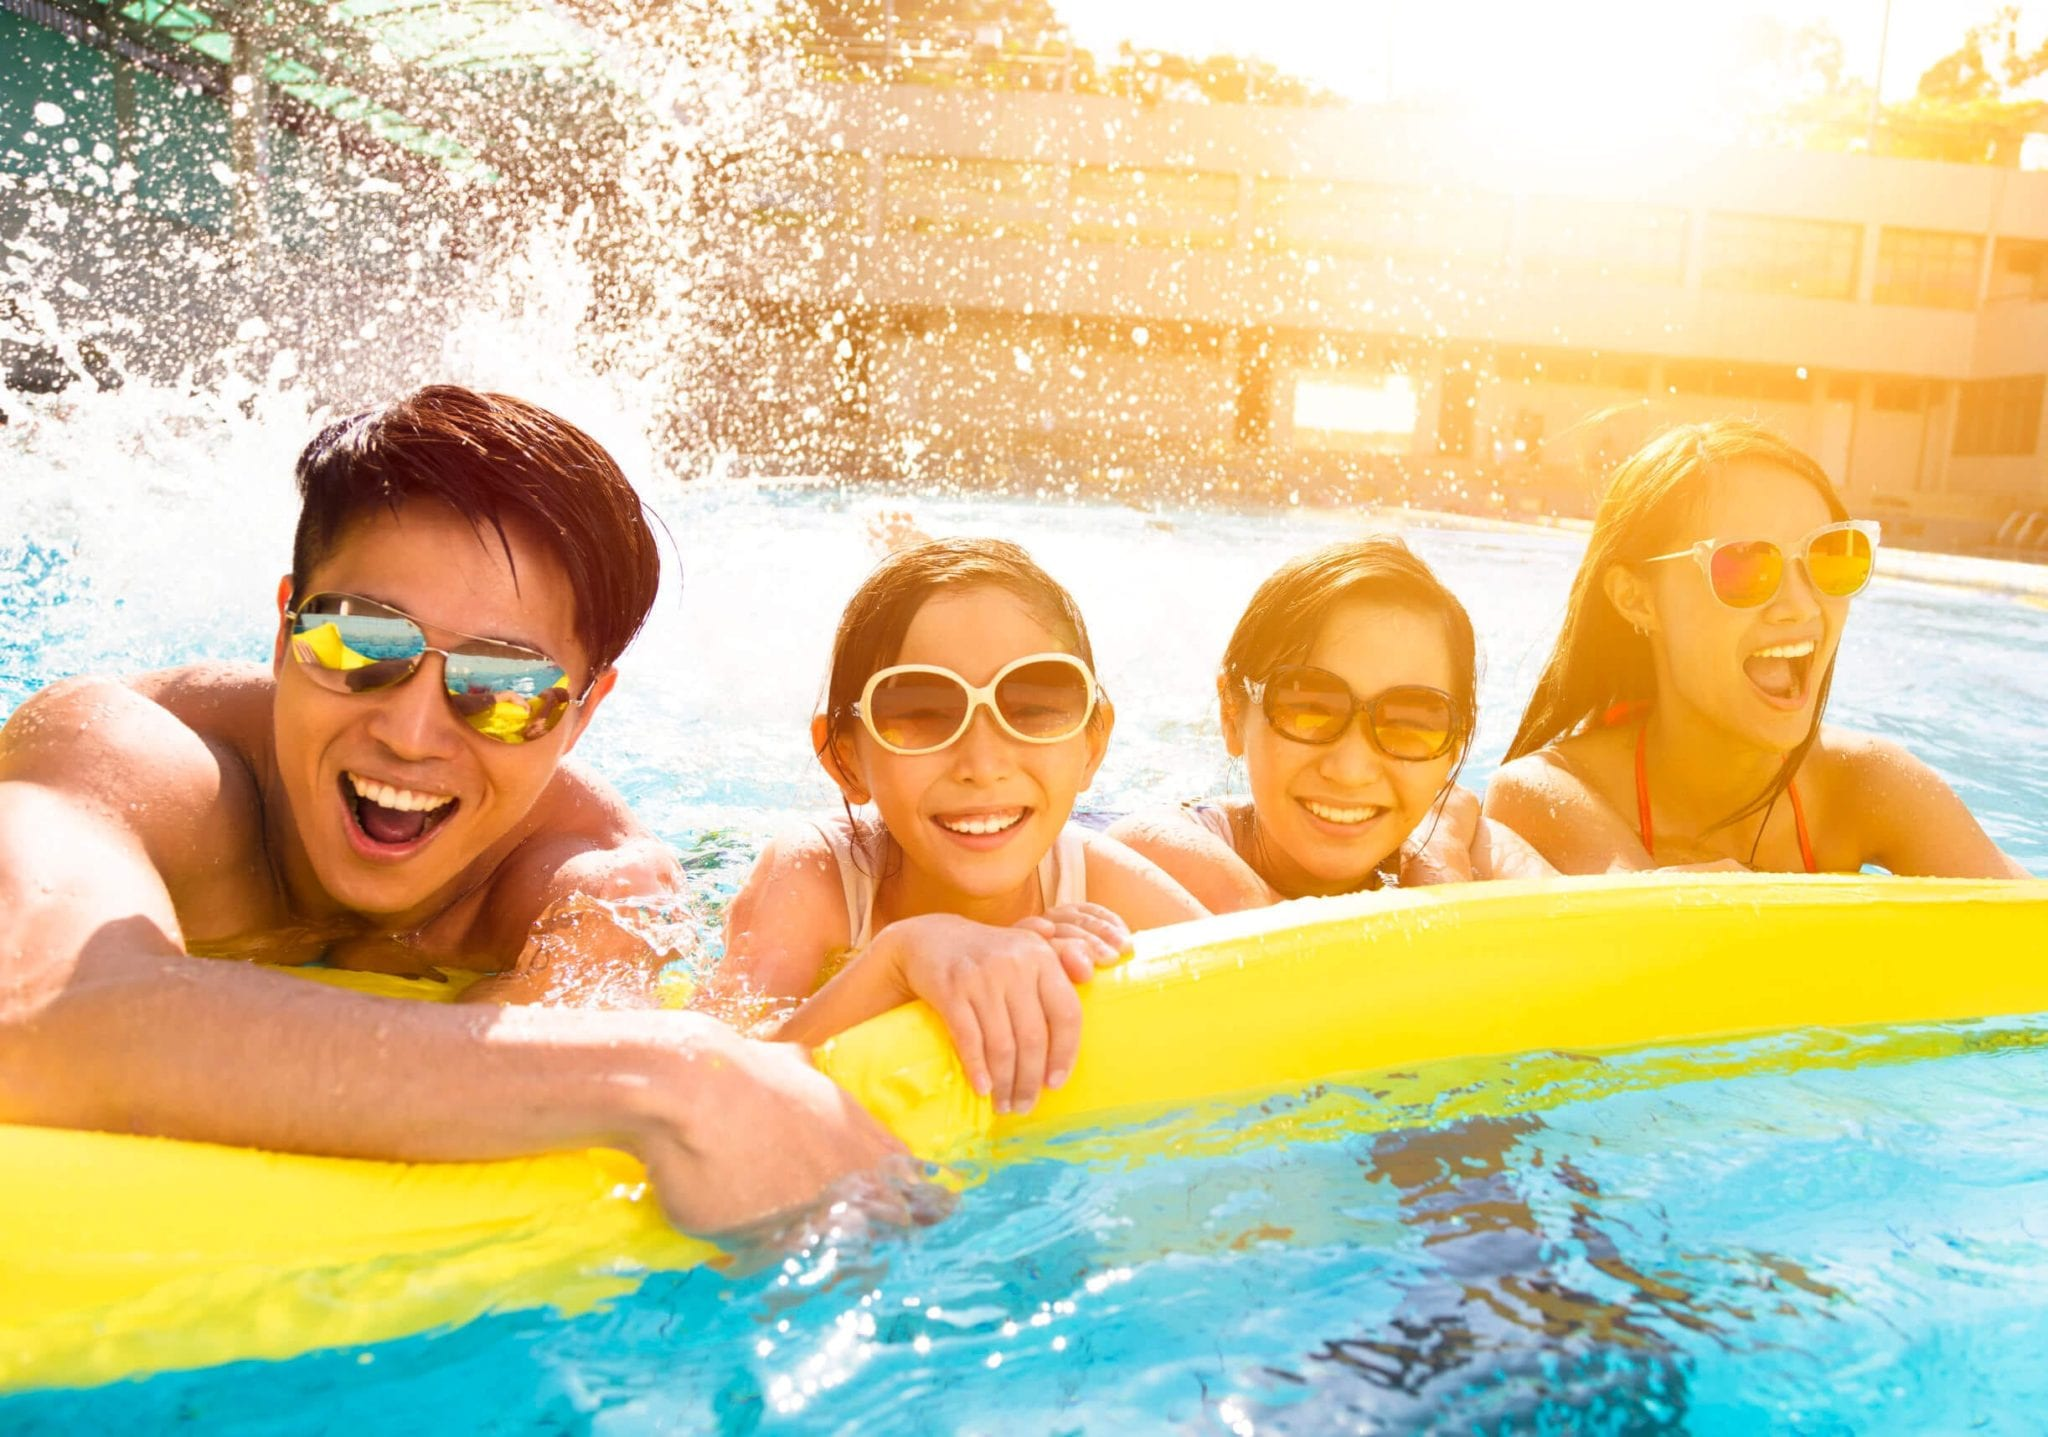 Why So Many Texans Get Hurt in and Around Swimming Pools